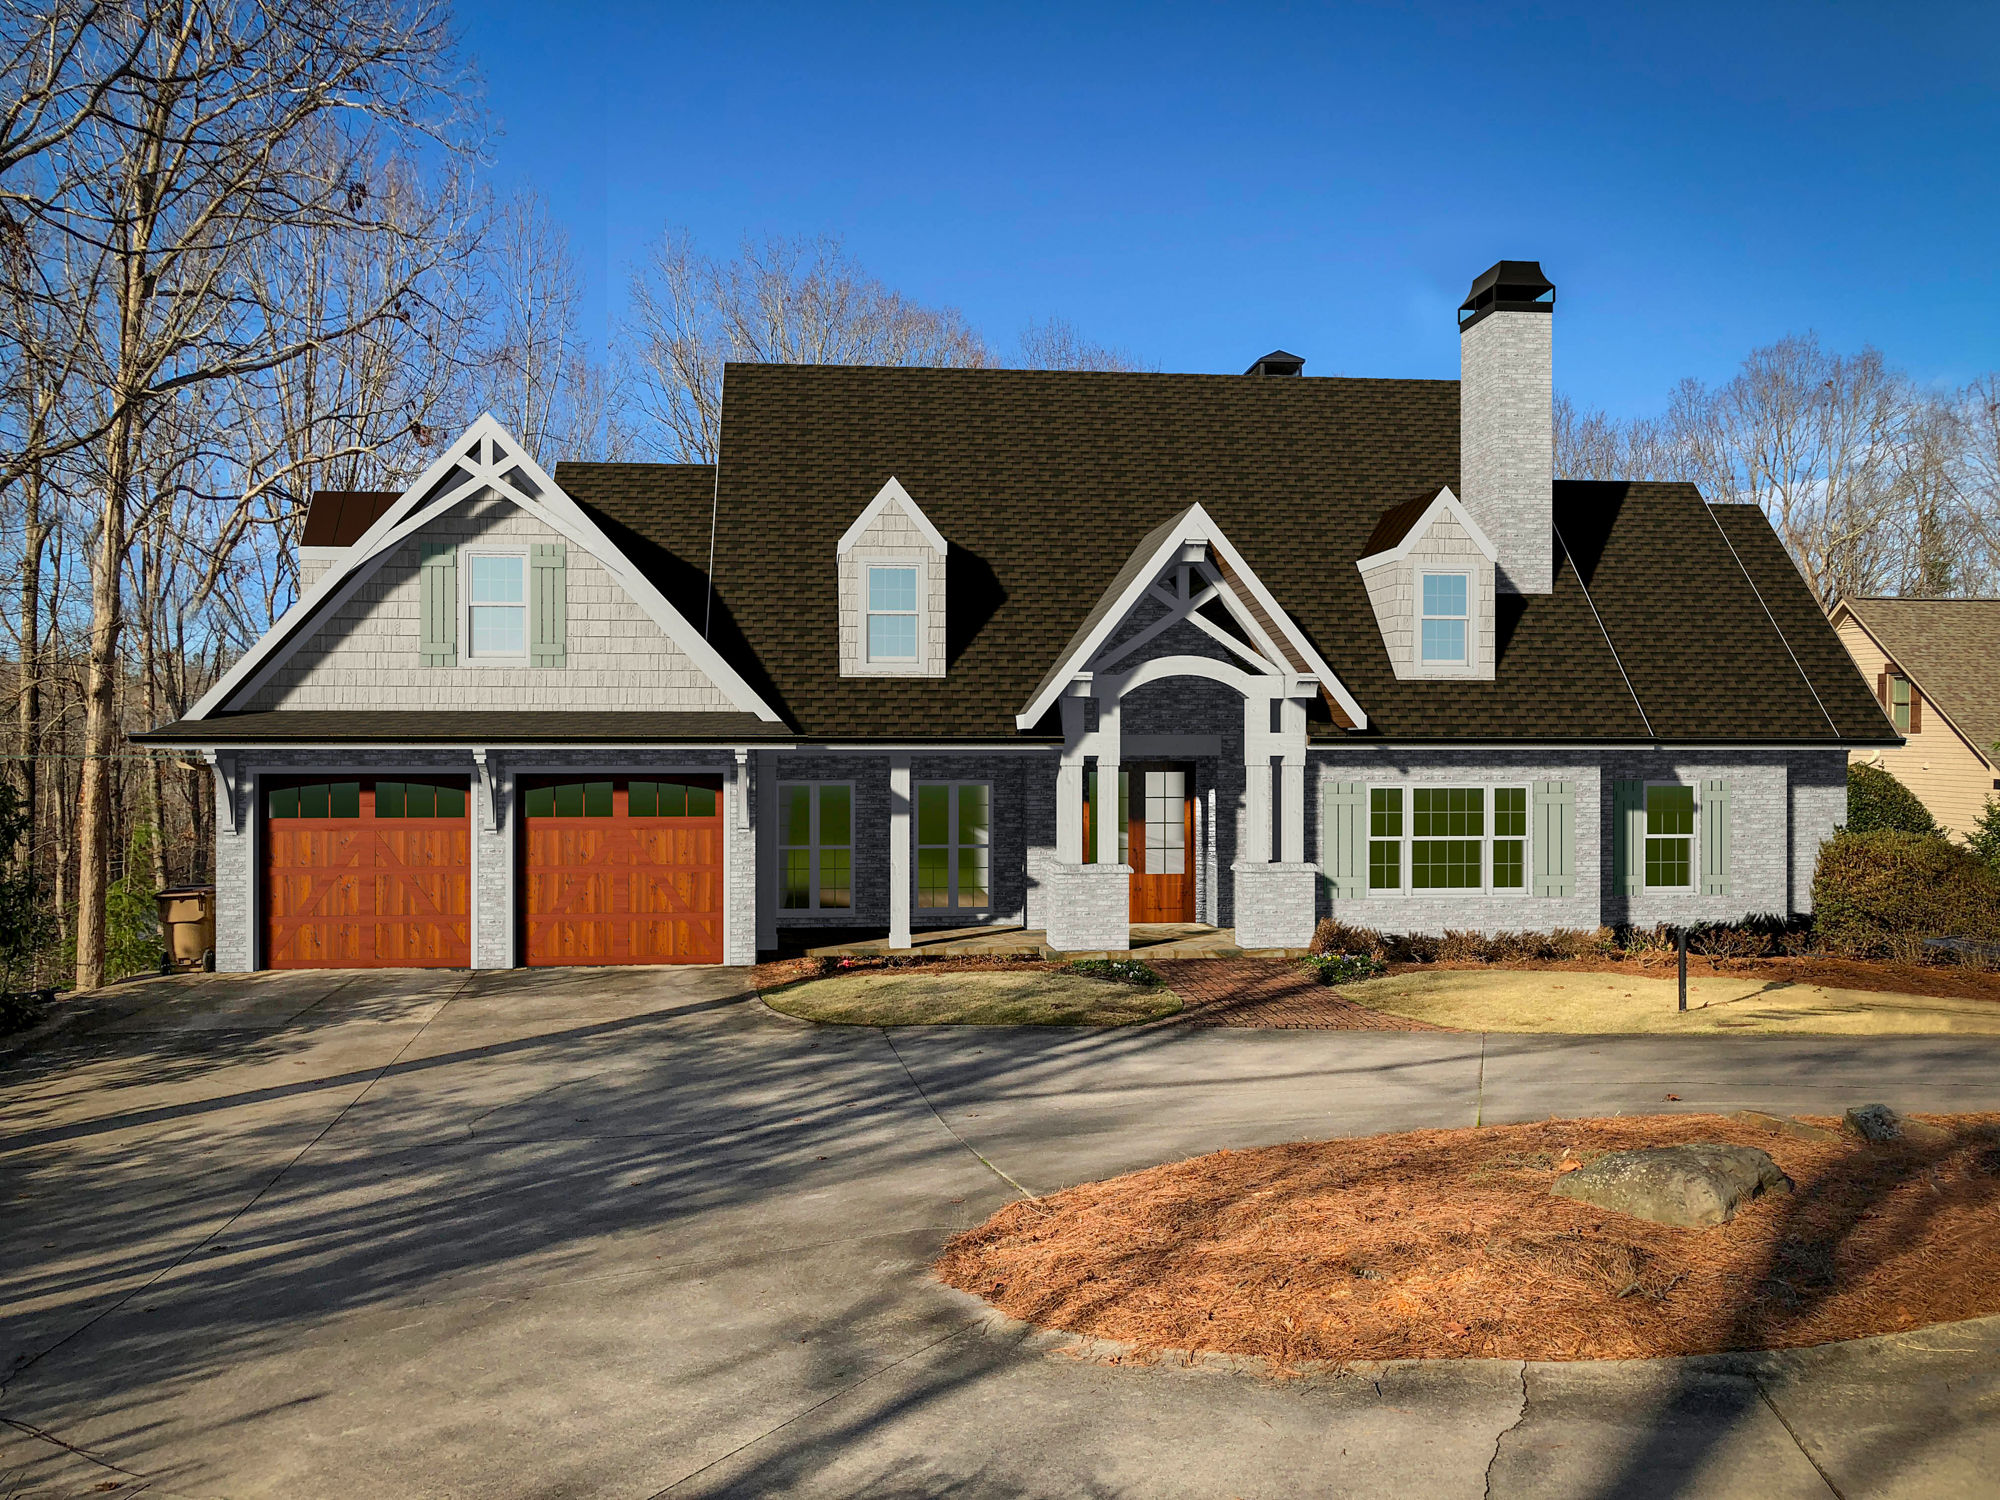 render after exterior home remodel design